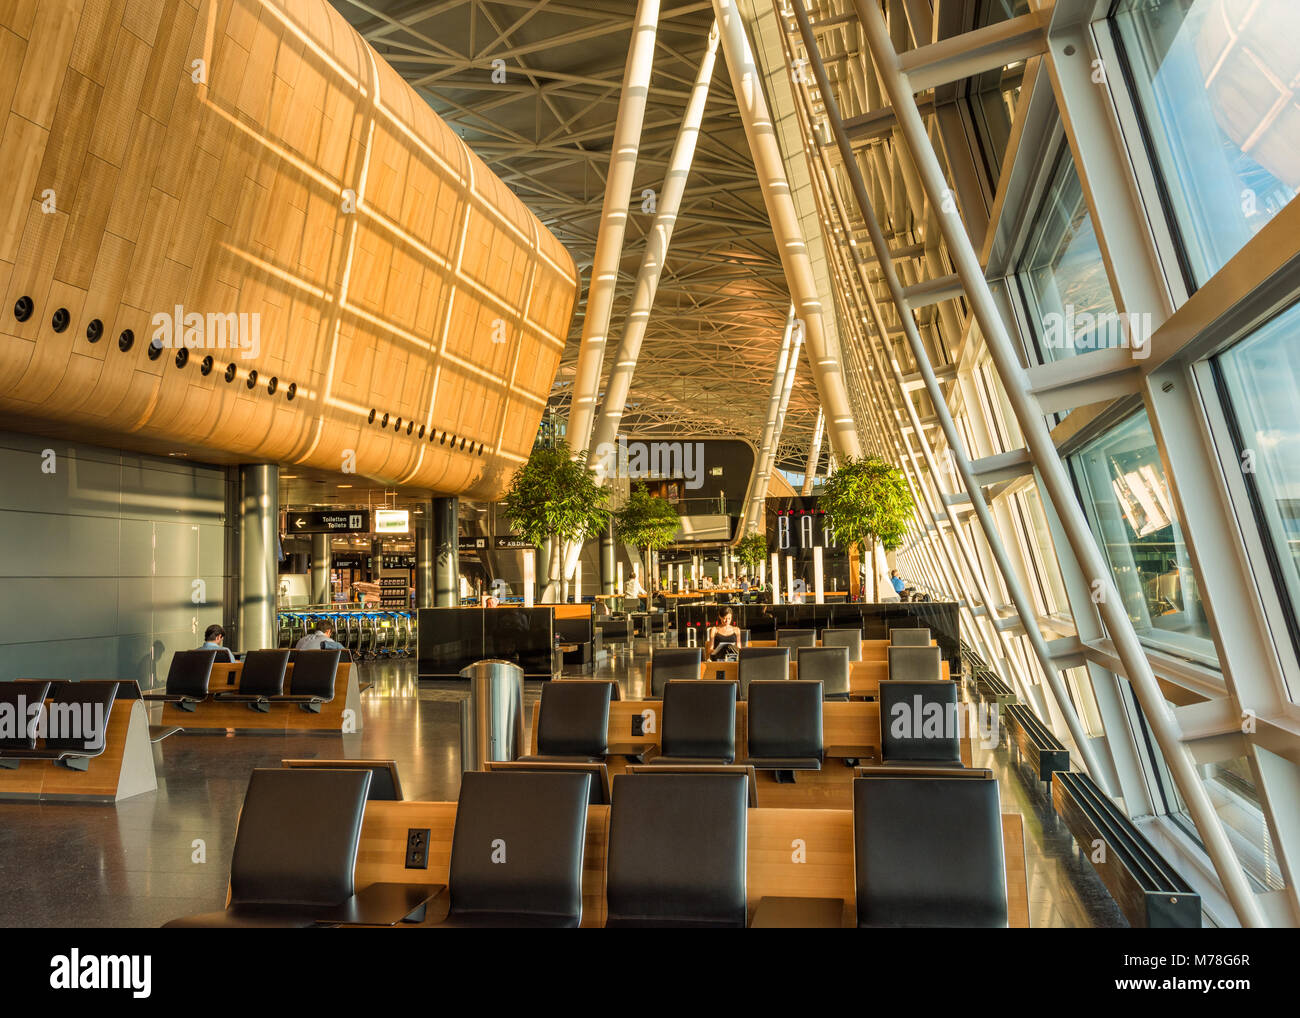 Zurich airport waiting area - Stock Image